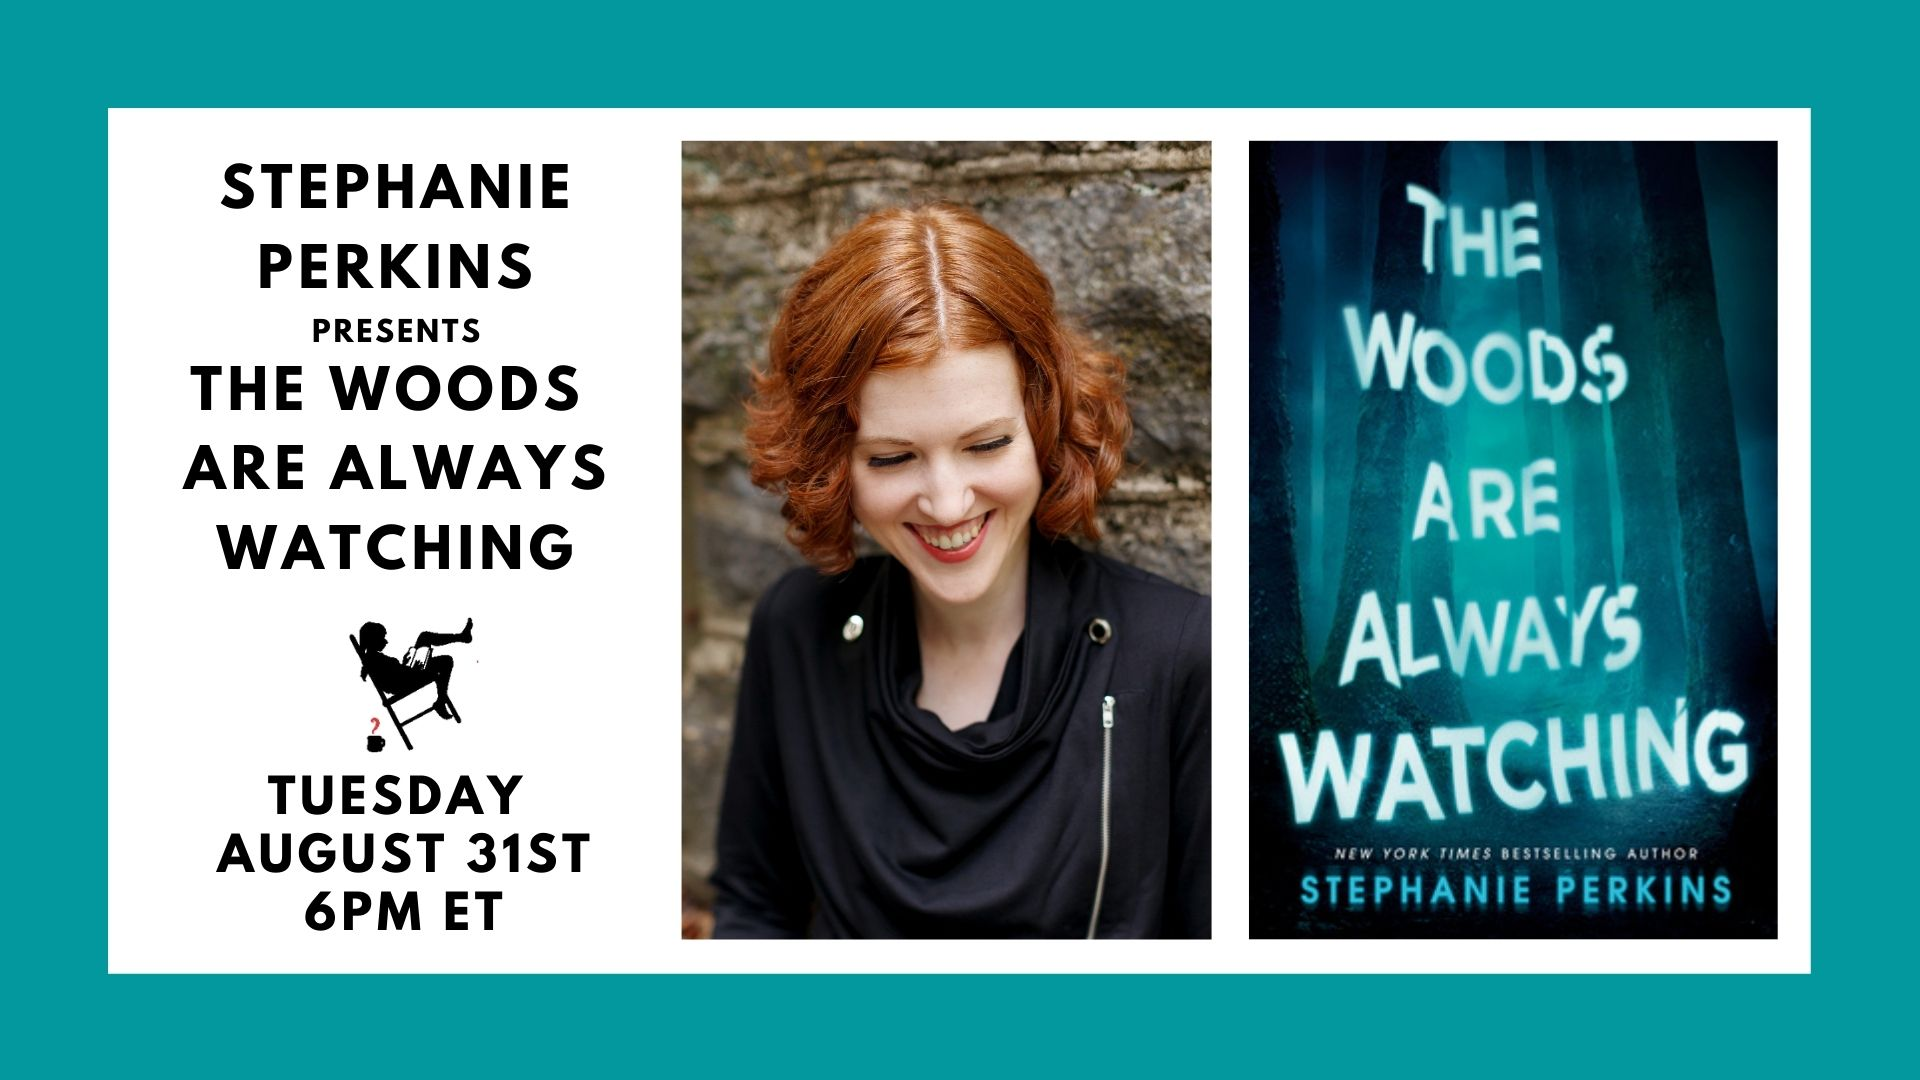 Image is a teal green background with black on white text with event title and photos of Stephanie Perkins and the featured book cover for event on Tuesday, August 31st at 6 pm.